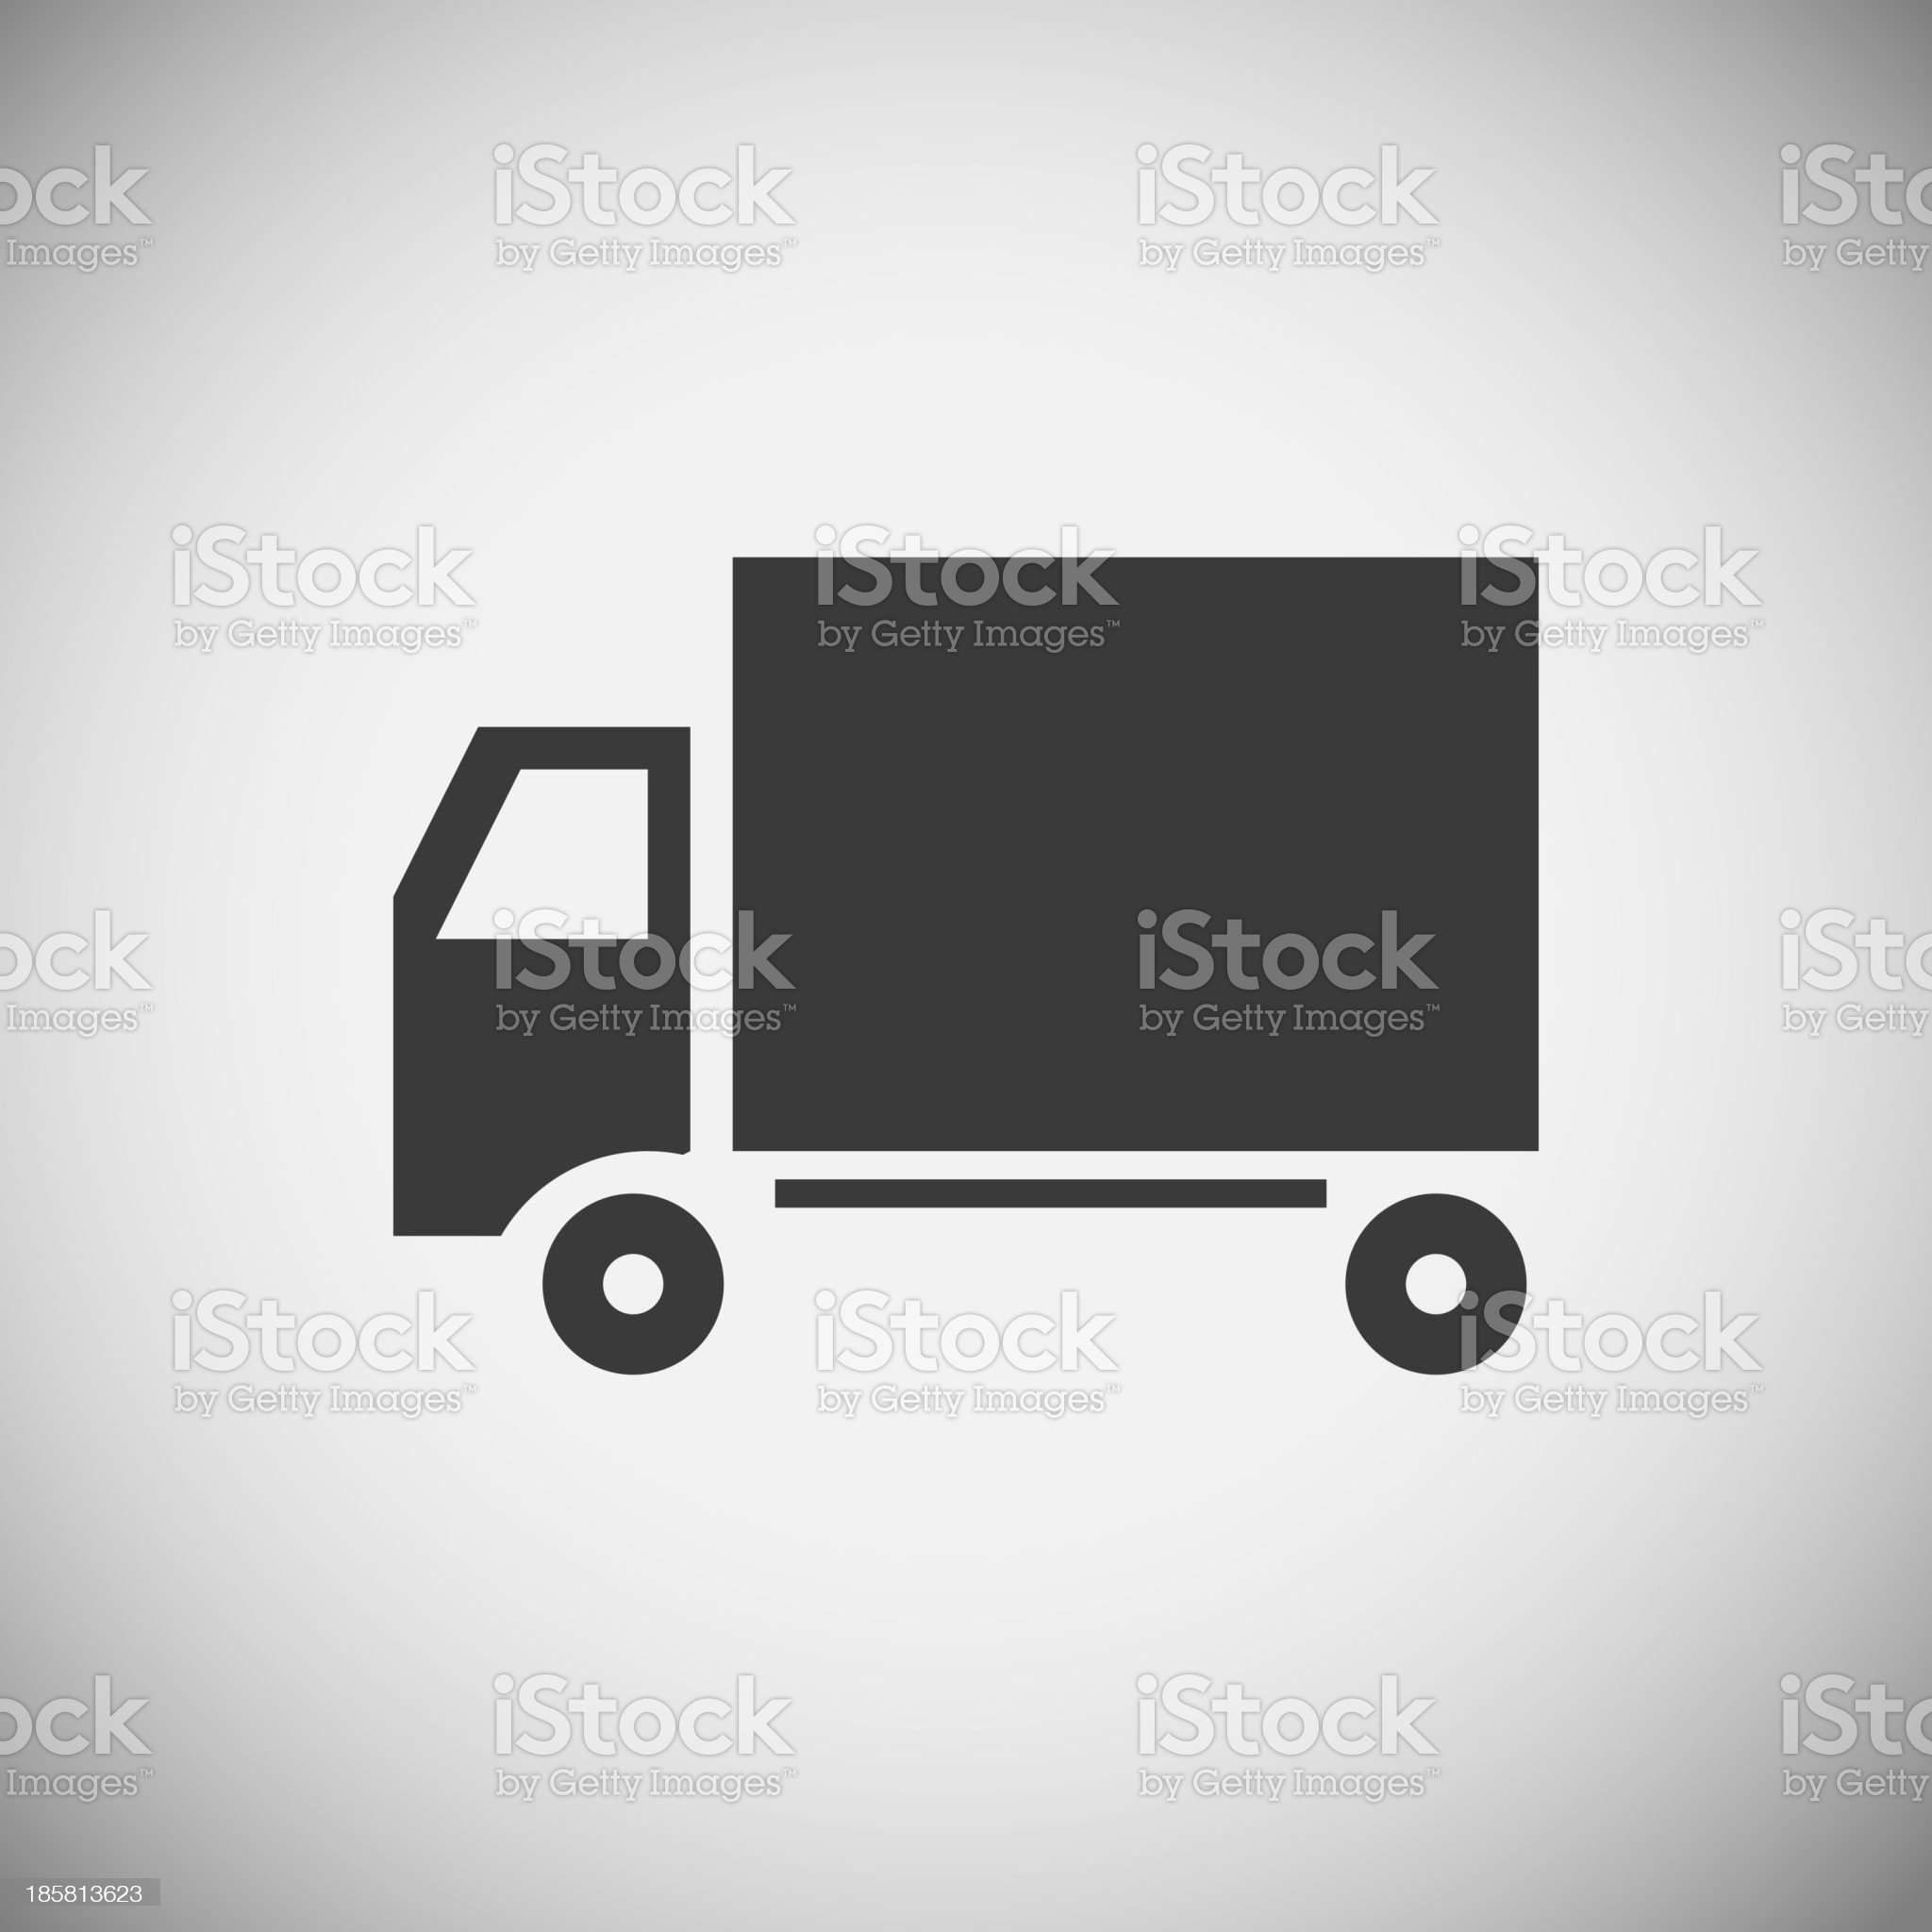 Logistics application icons royalty-free stock vector art